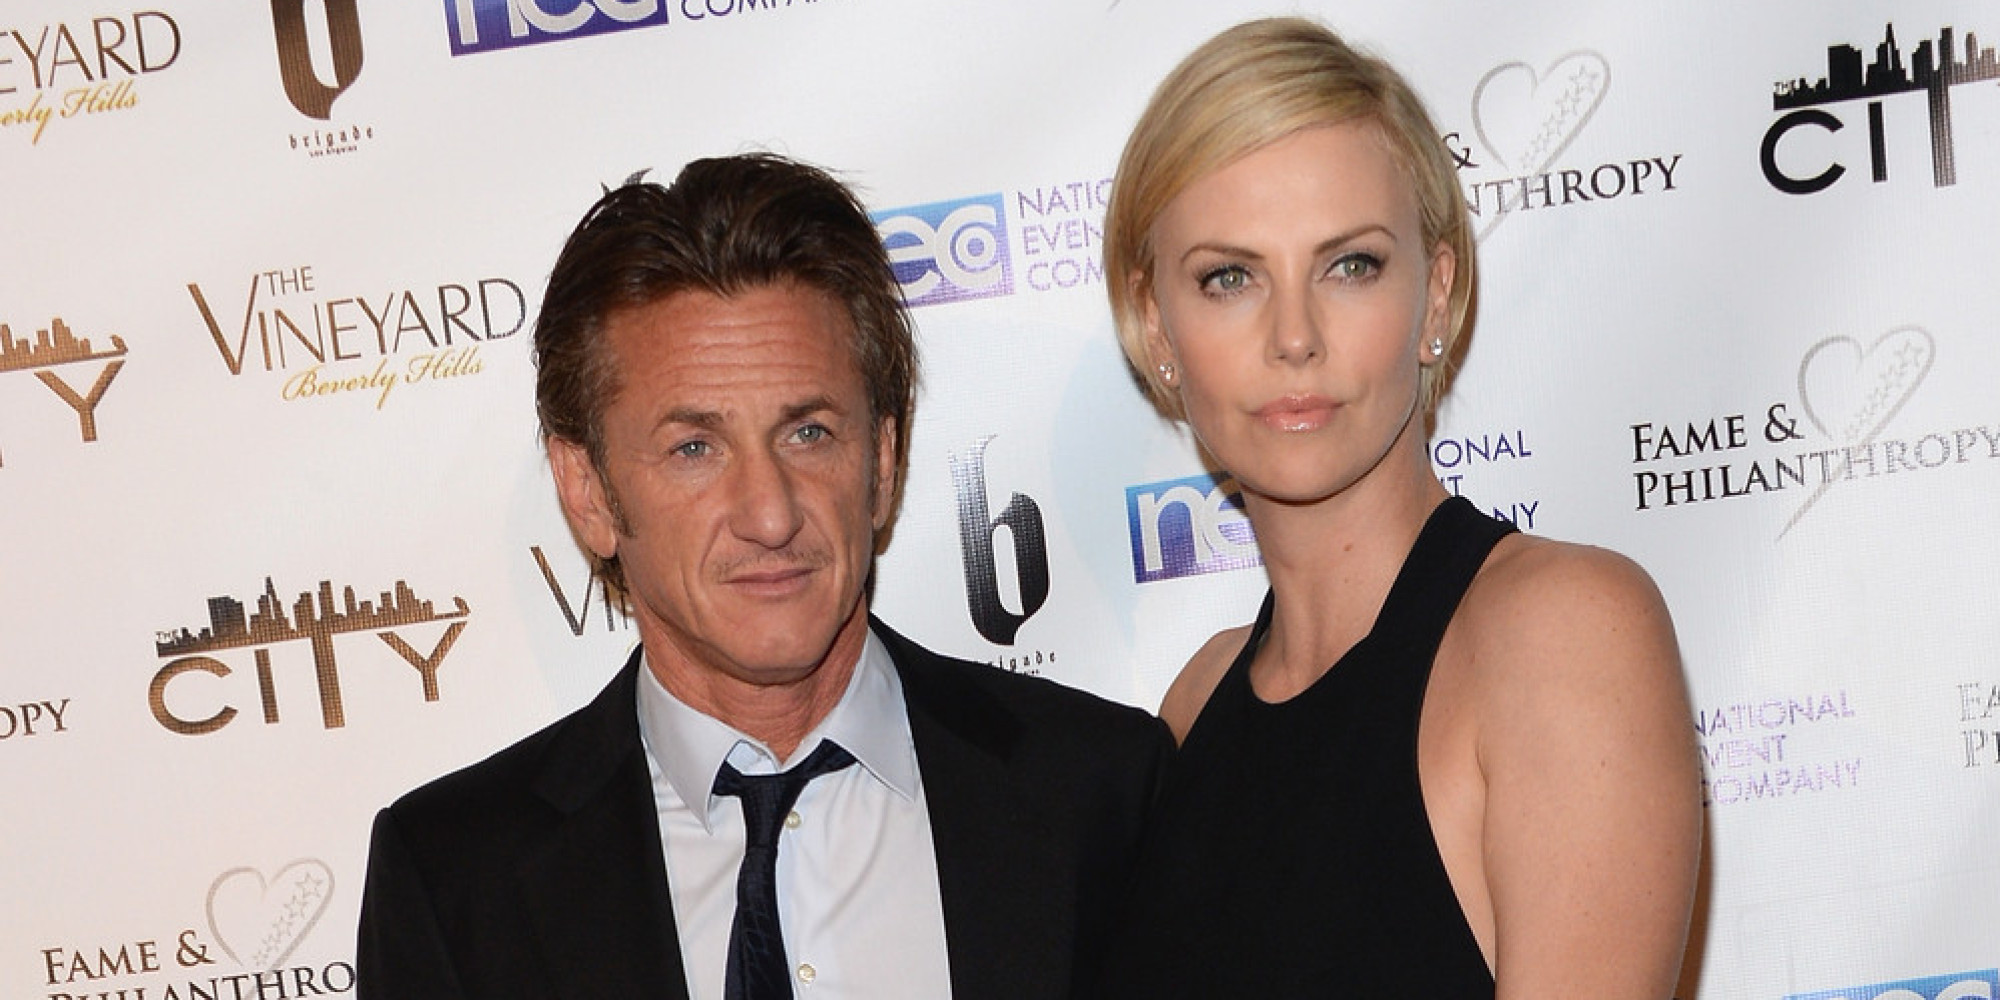 Sean Penn with Charlize Theron at post Oscar party